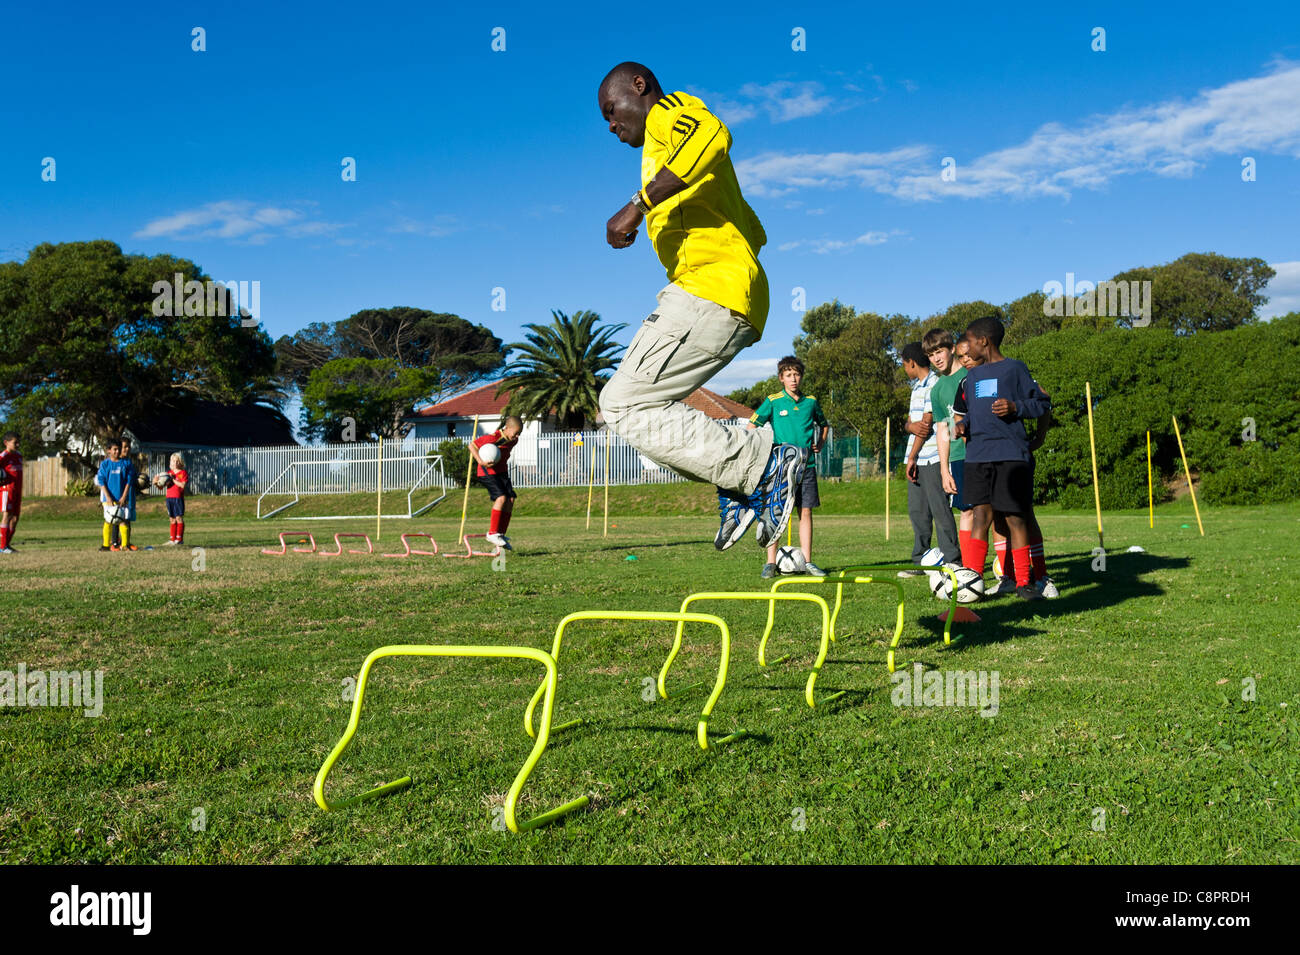 Football coach showing junior players practicing skills Cape Town South Africa - Stock Image